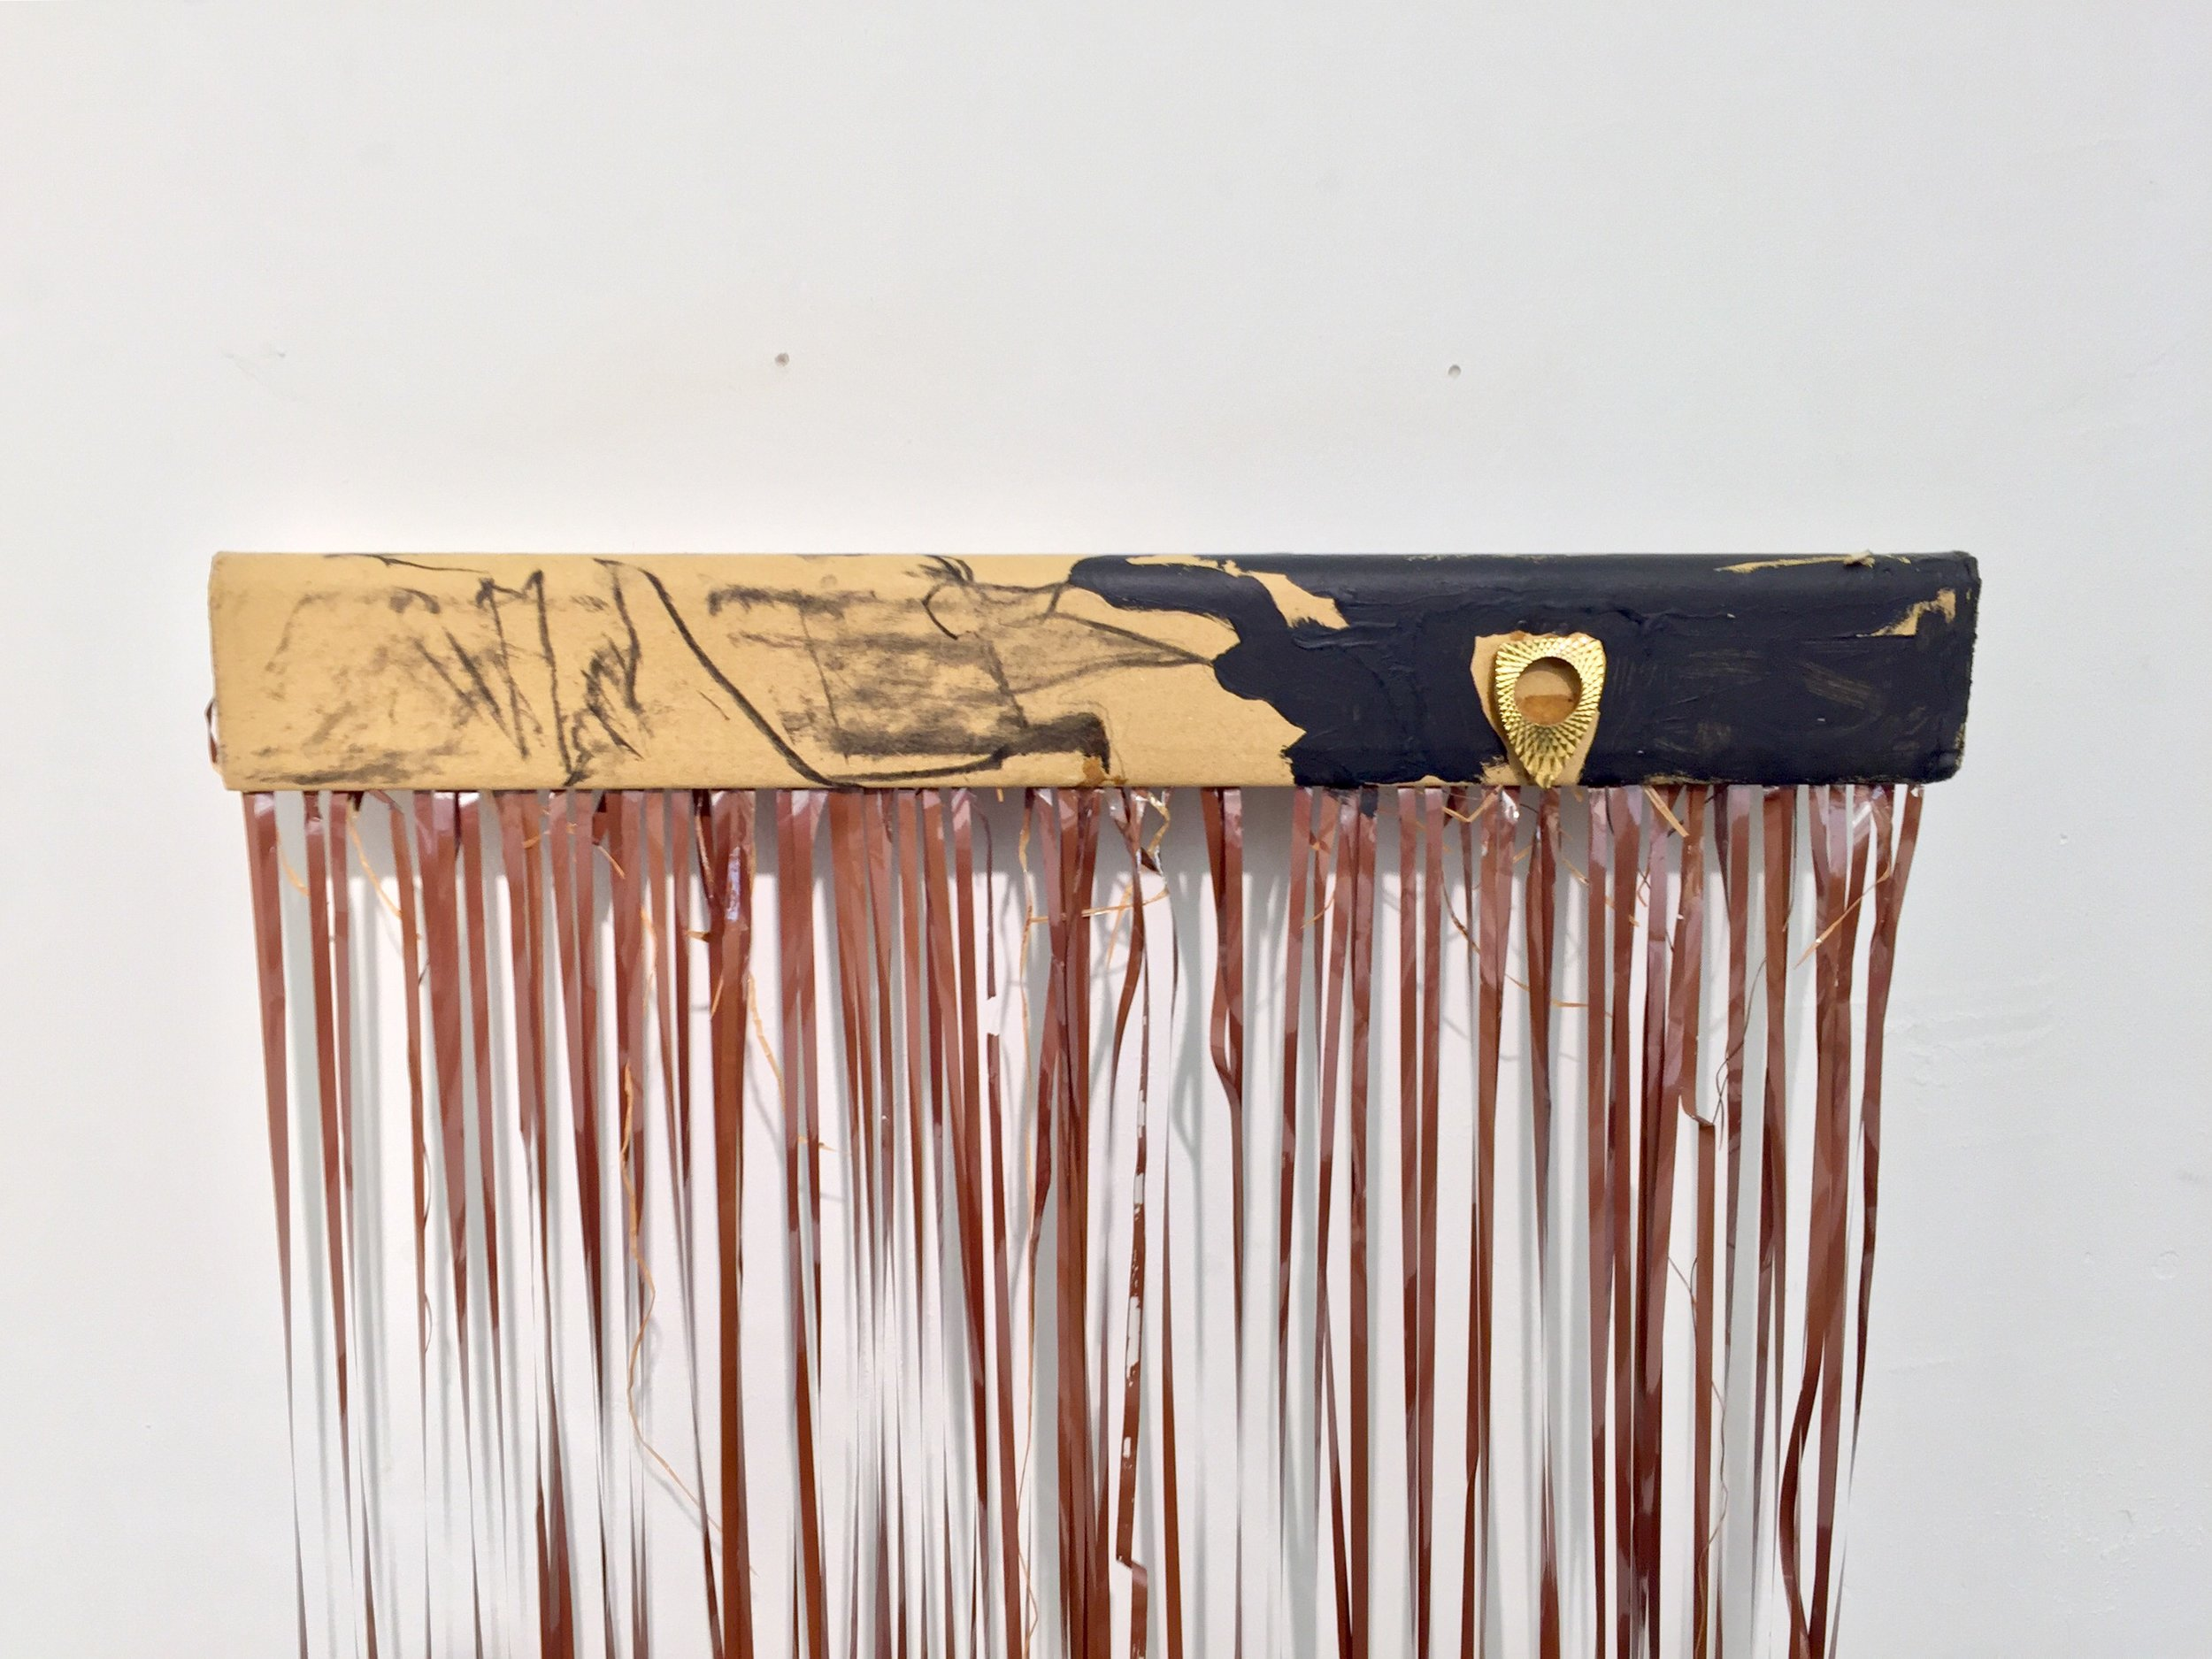 Side A/Side B (Memory's Tentacles)     (detail)  One cassette tape, vintage bezel, charcoal, acrylic paint, protective packaging, found coffee table  55 x 28 x 28 inches  2018